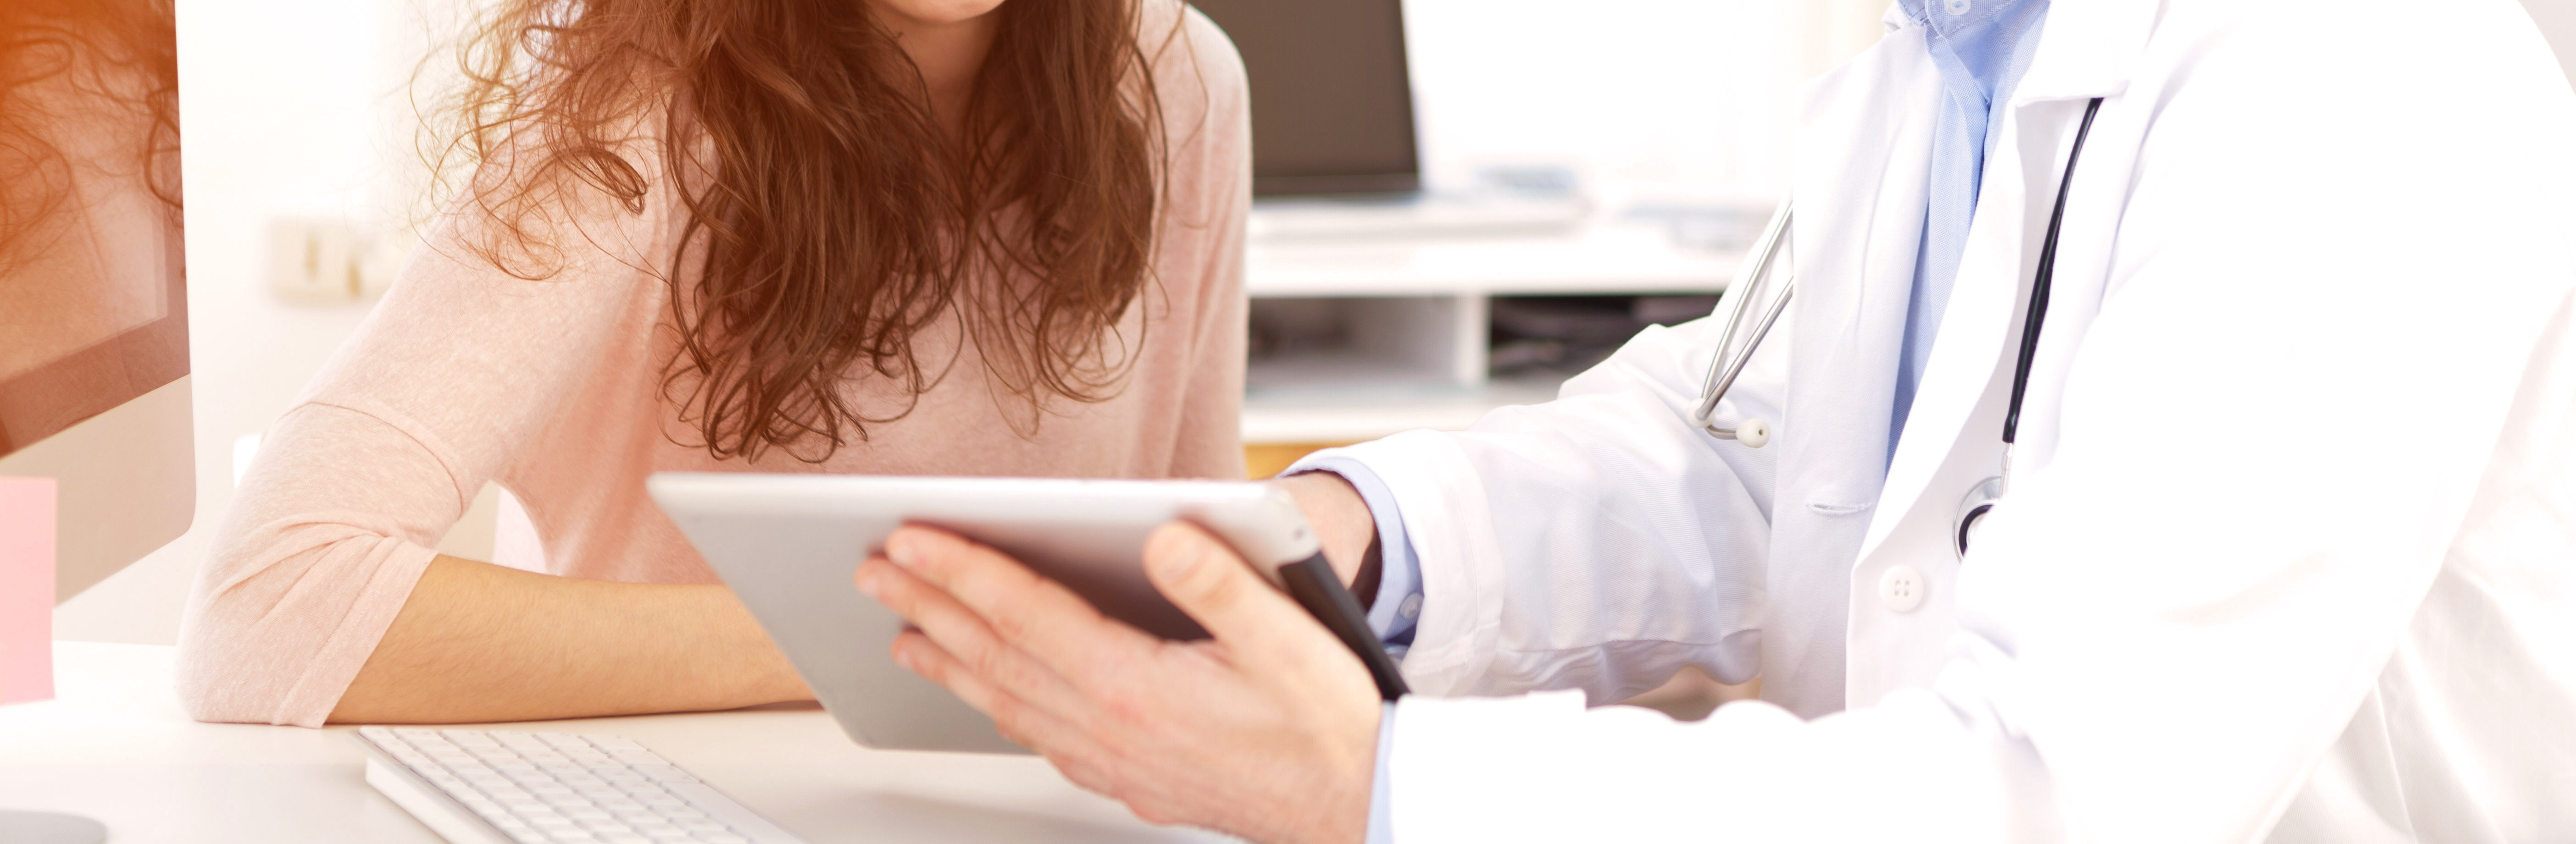 Increase patient acquisition with an online scheduling platform